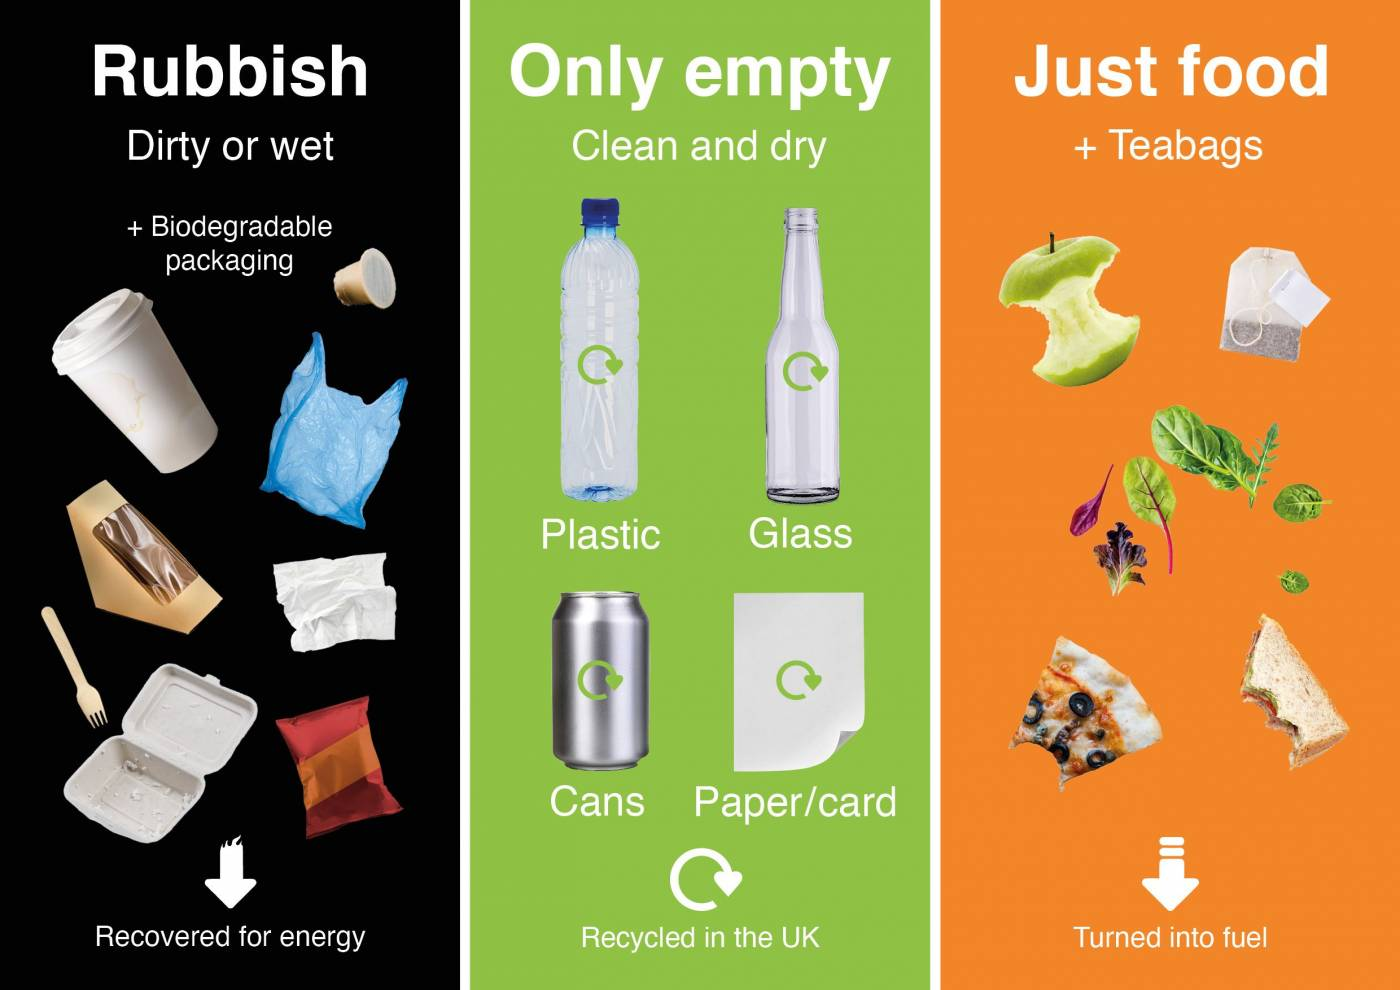 Image of recycling